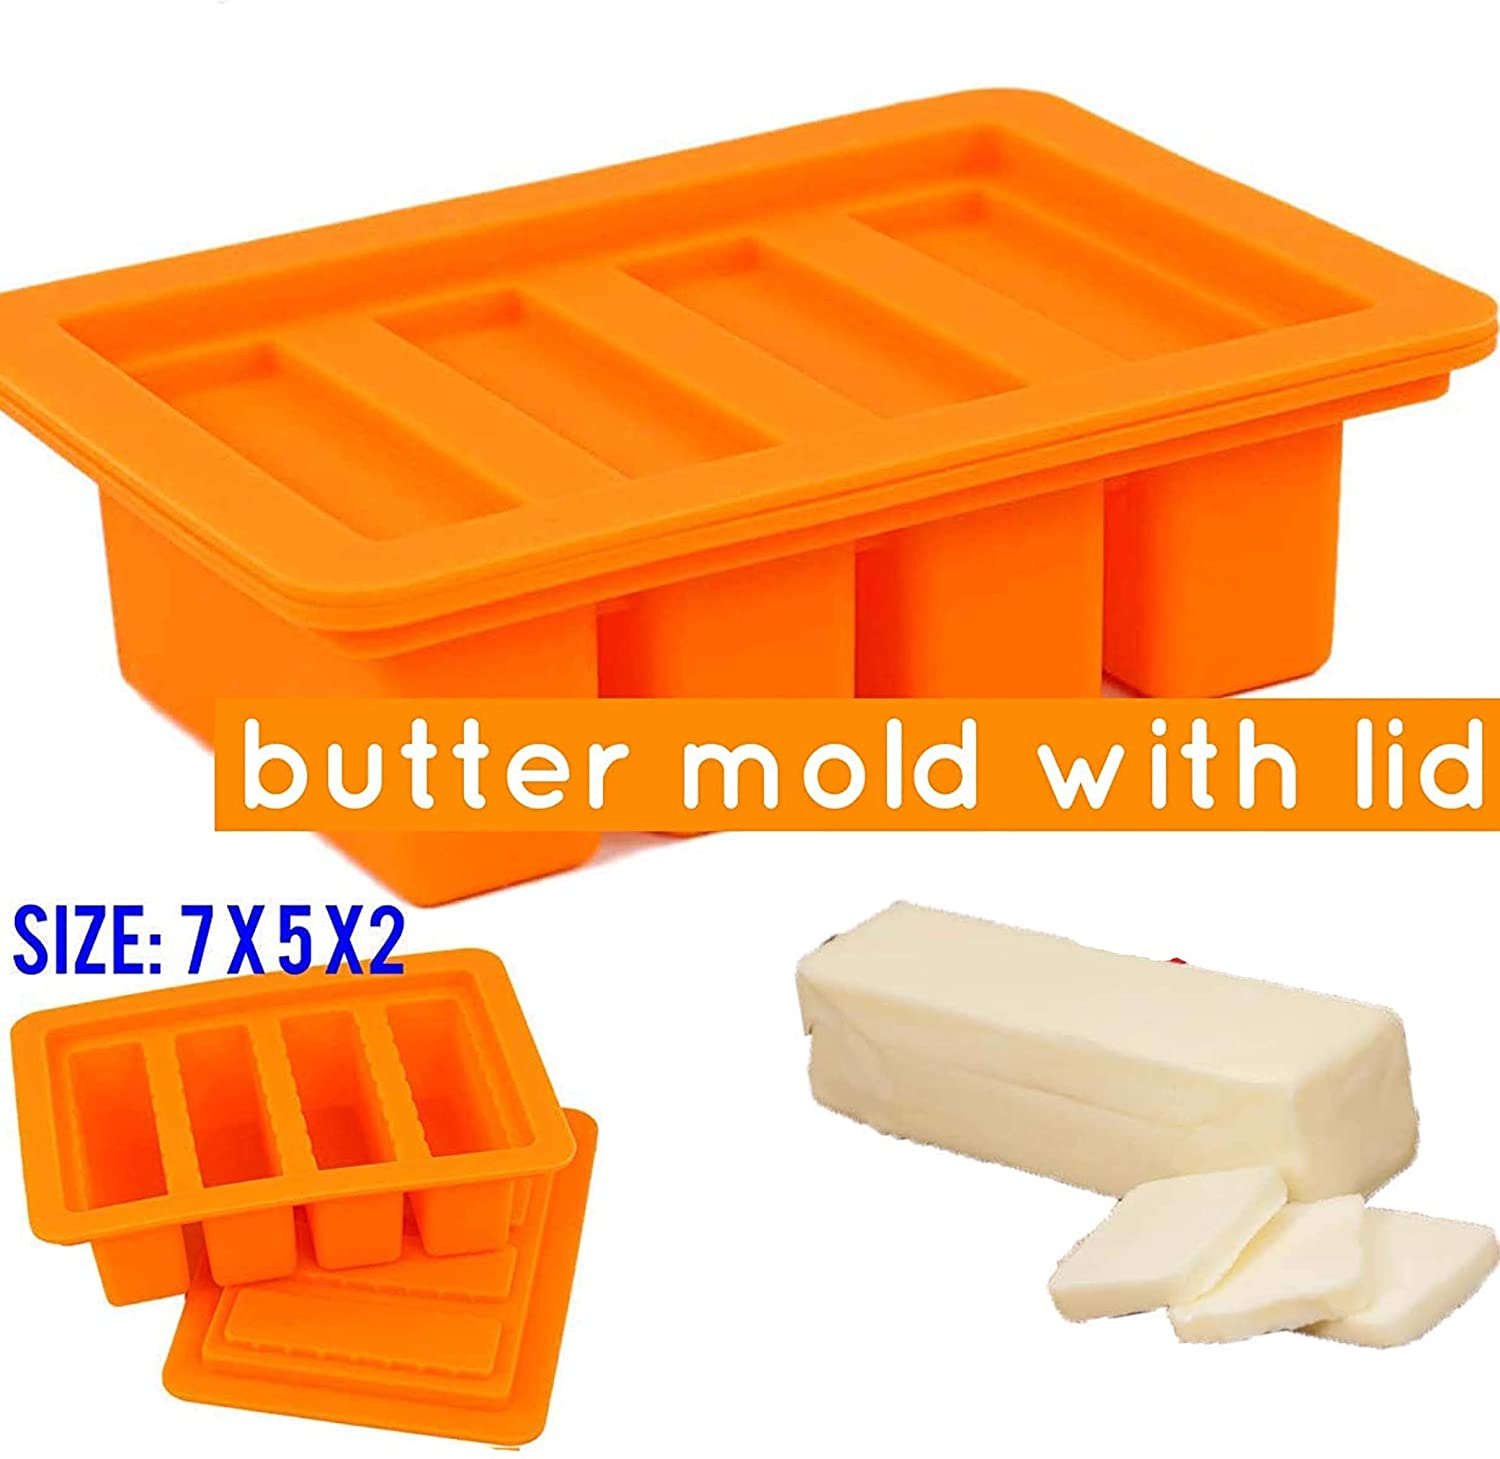 Large 4 Cavities butter mold silicone (orange)